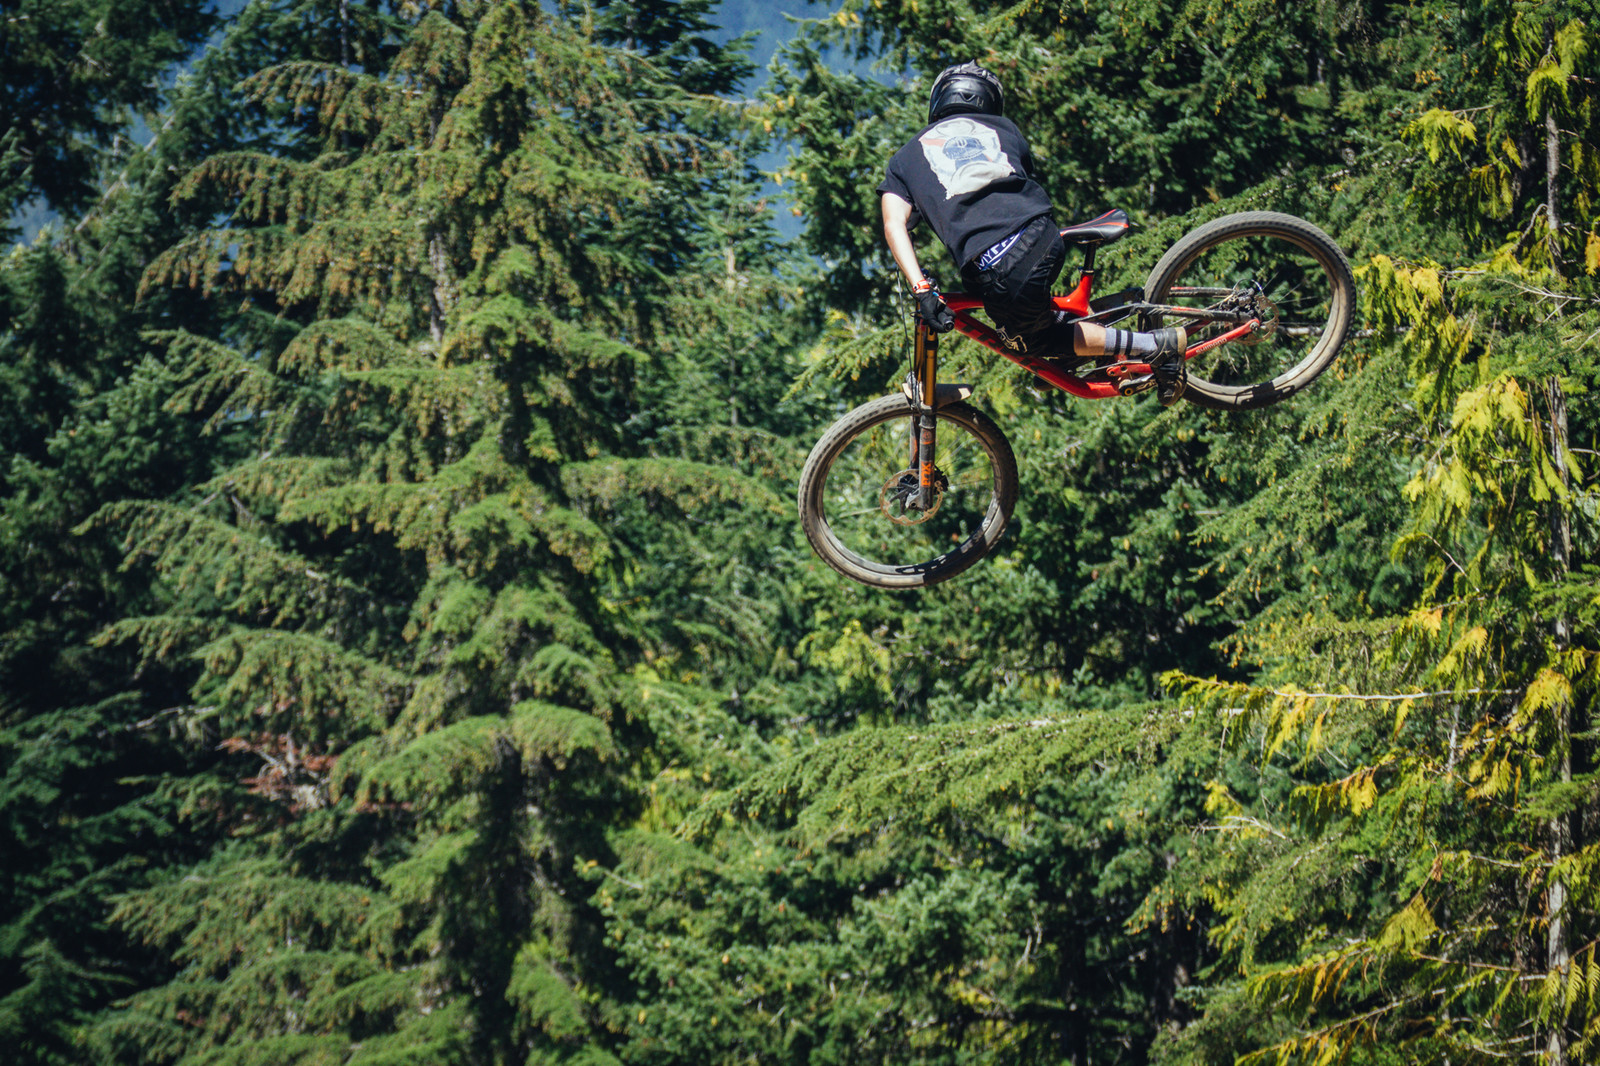 Party Ridin' - Whip Off World Champs Qualifiers - Going for Broke: 14 Super Sideways Senders from Whip Off World Champs Qualifiers - Mountain Biking Pictures - Vital MTB